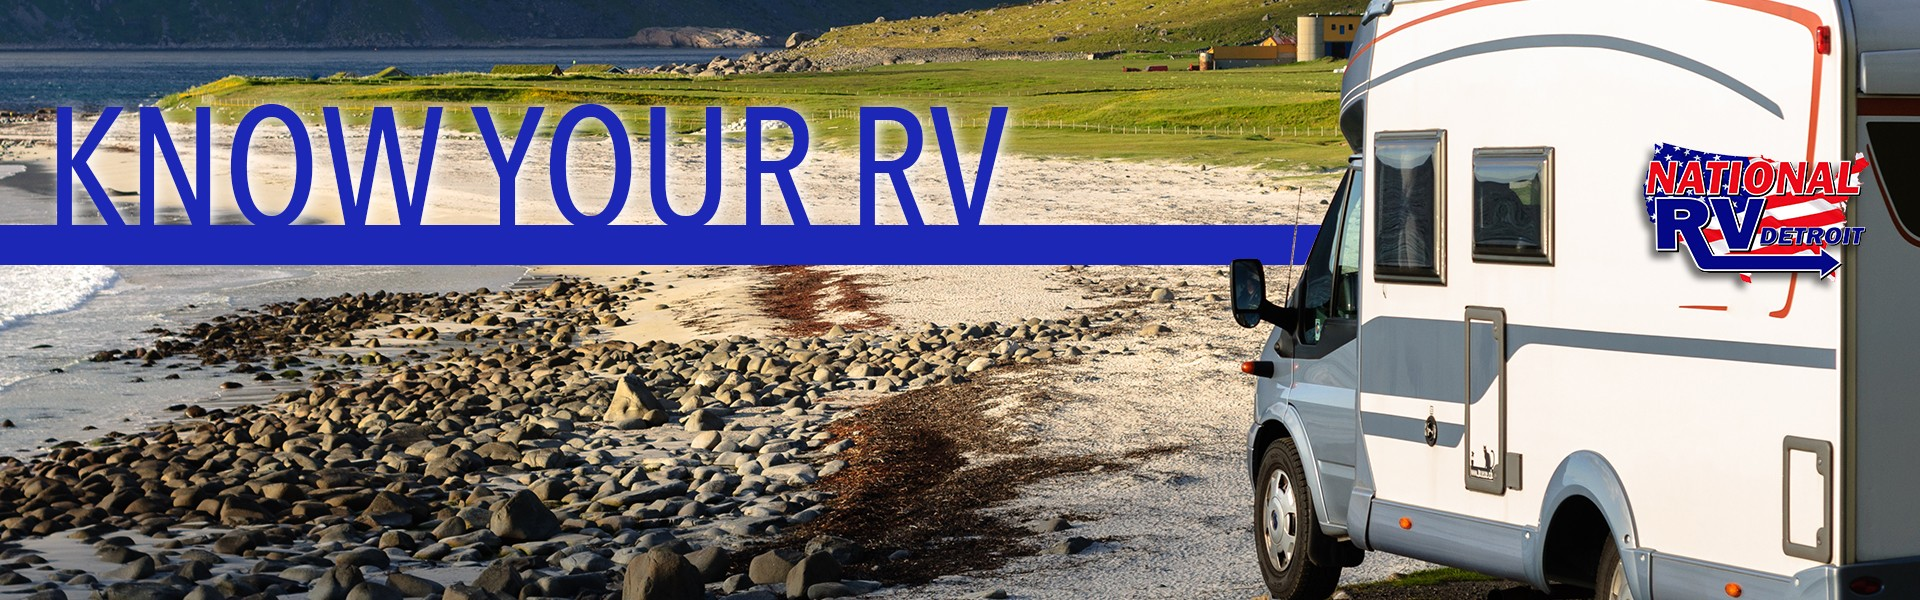 Know your RV - understanding your RV features